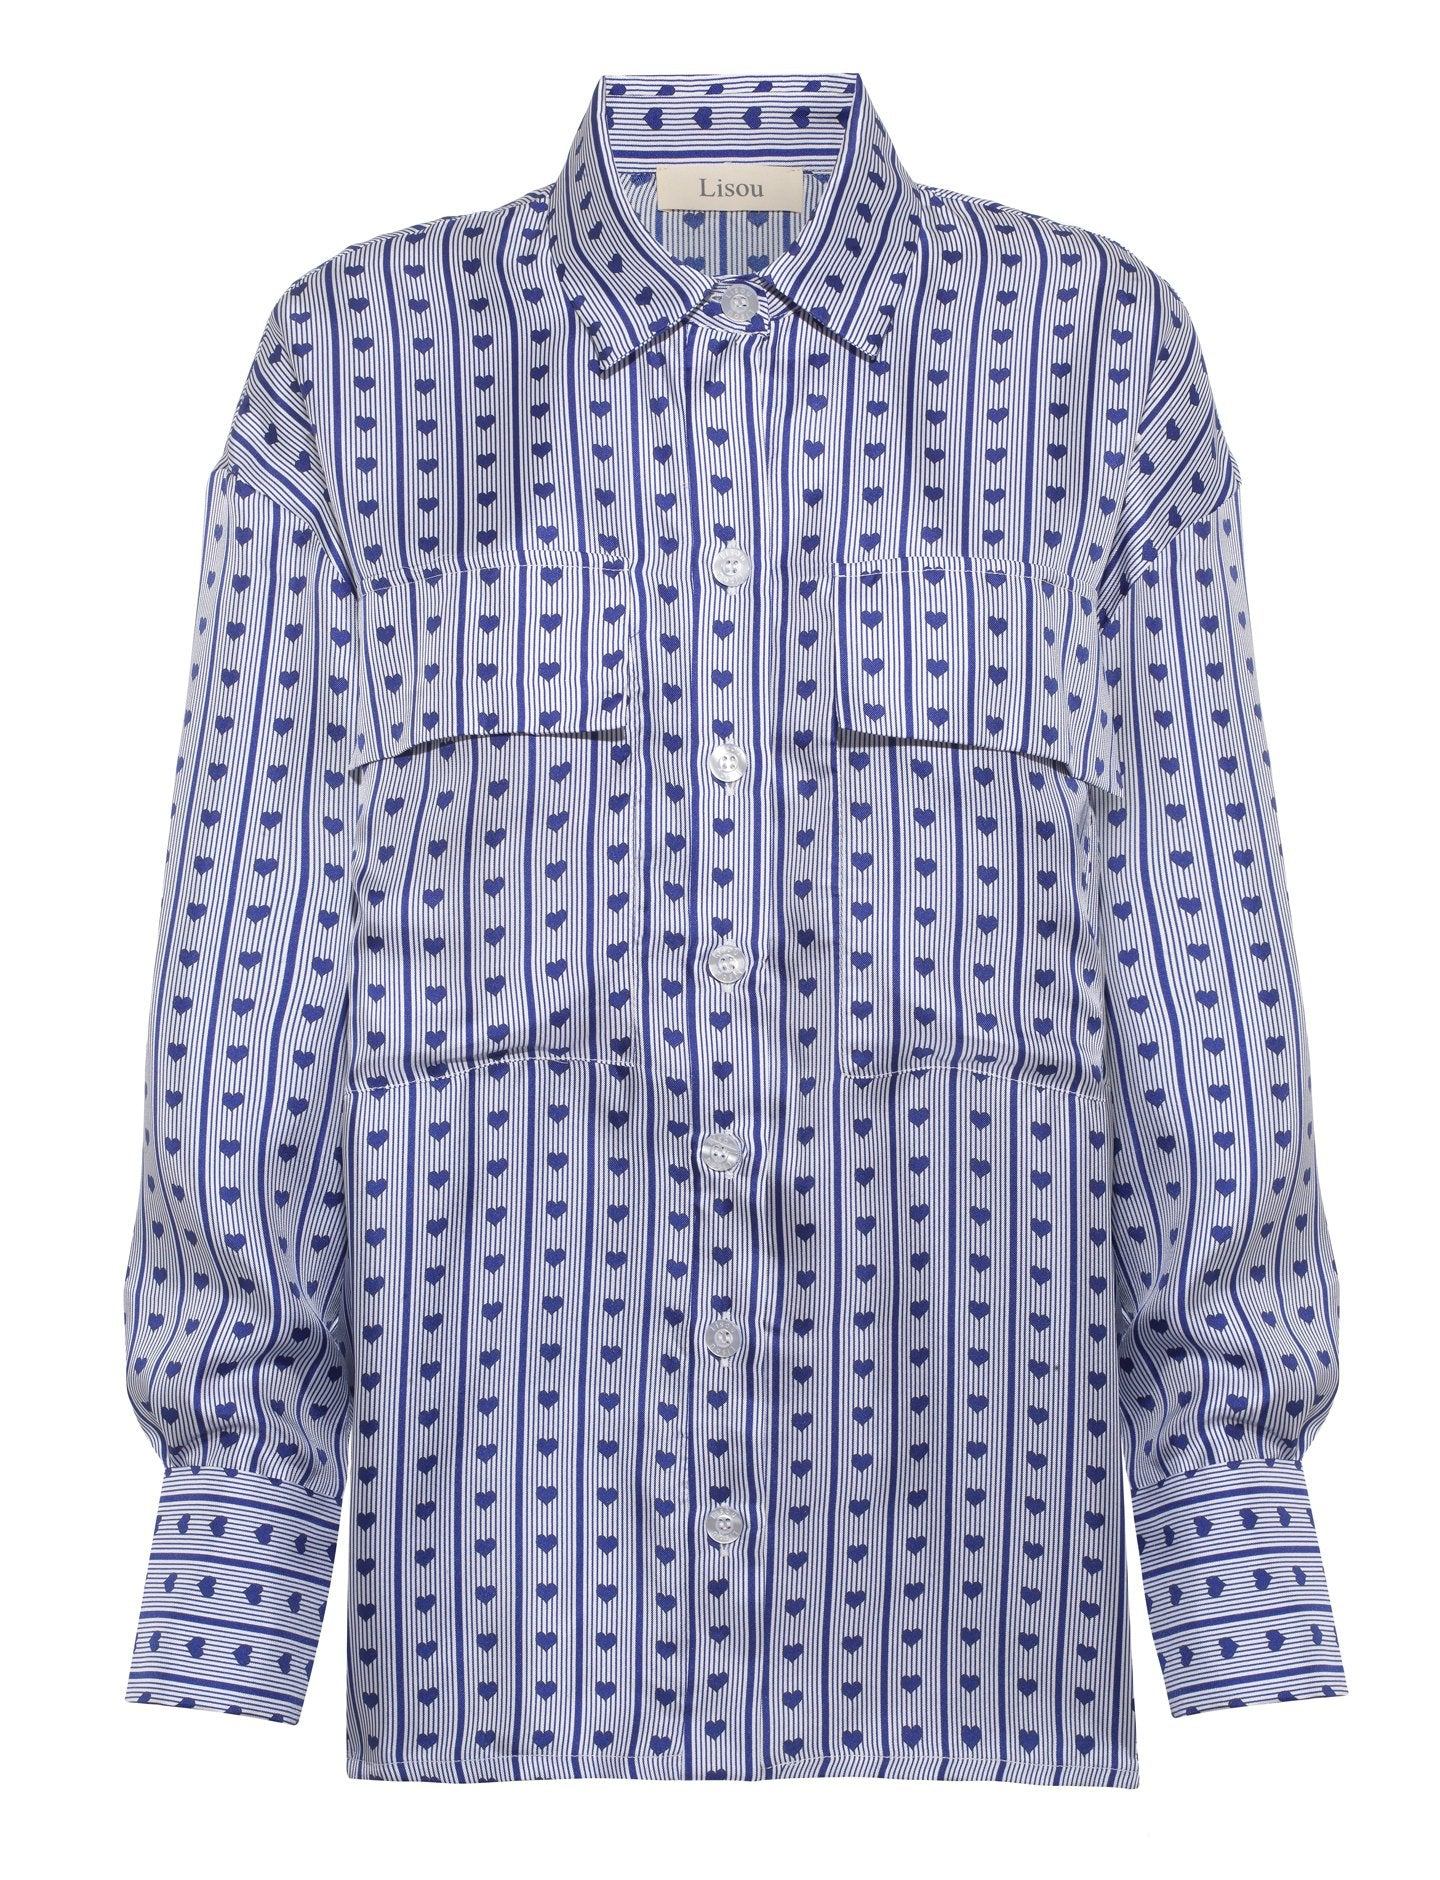 Alanna Love Heart blue stripe silk shirt